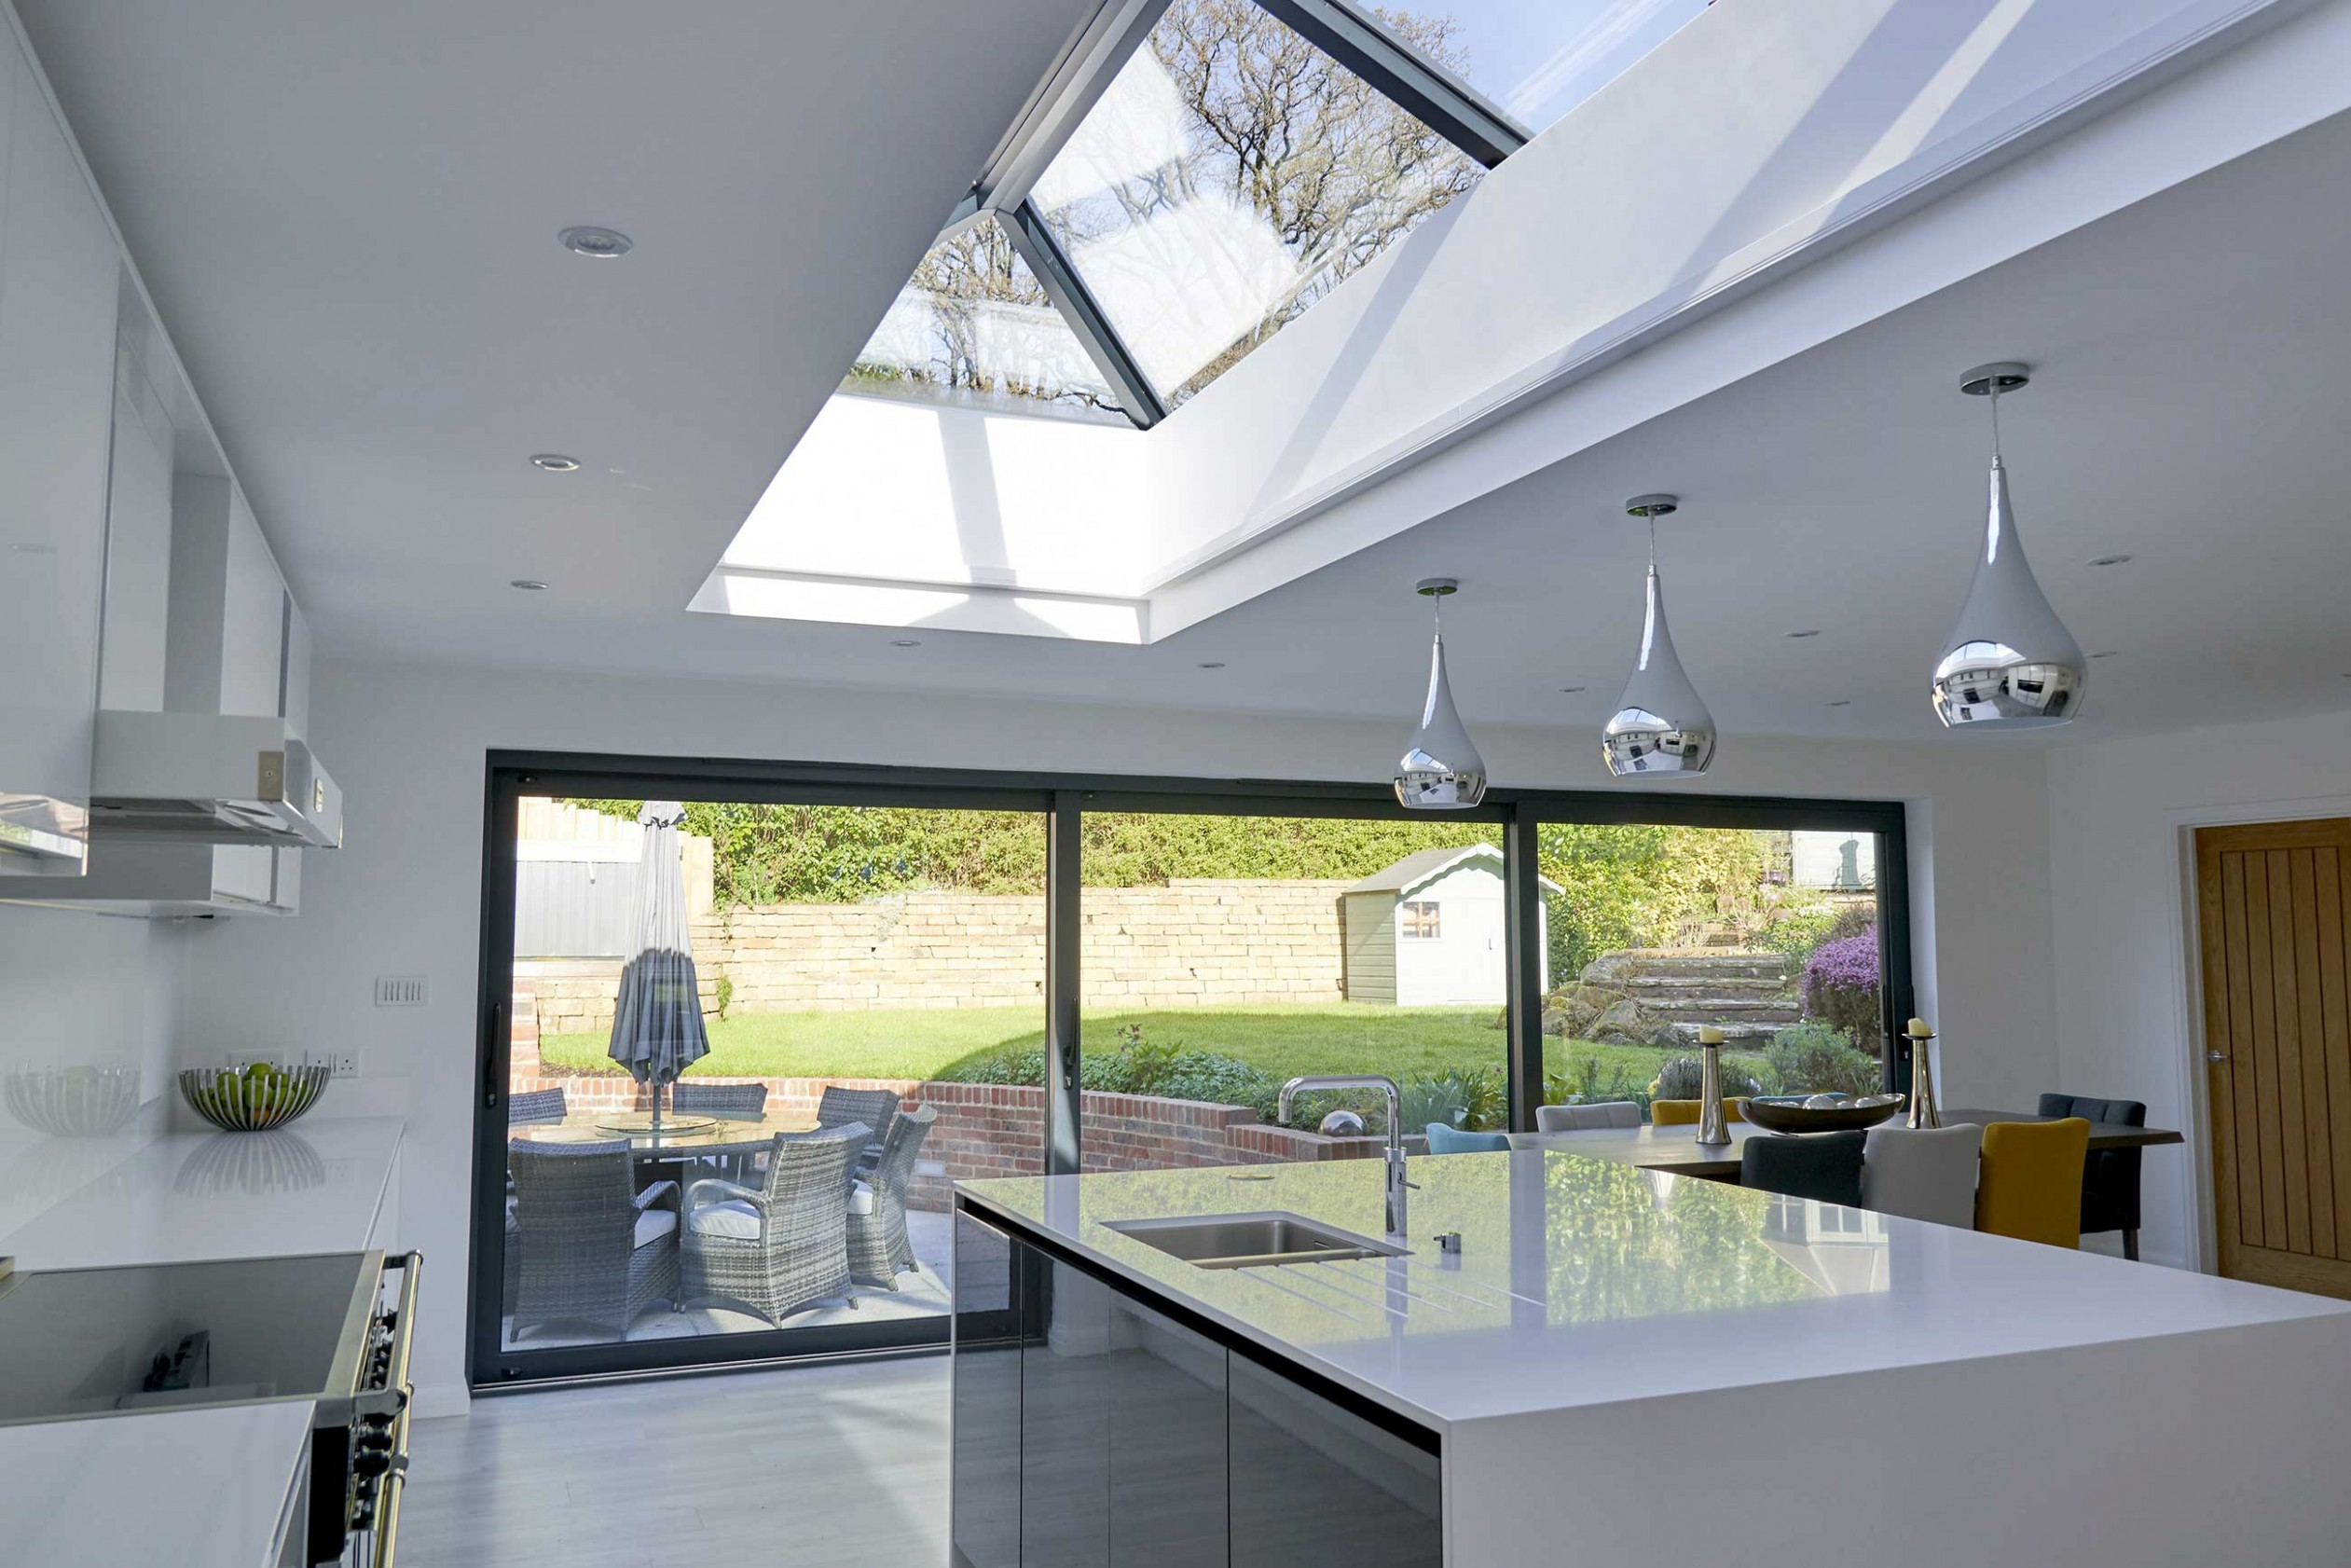 House Extension Ideas  House Extension Designs  House Extension Cost - Kitchen Dining Room Extension Ideas